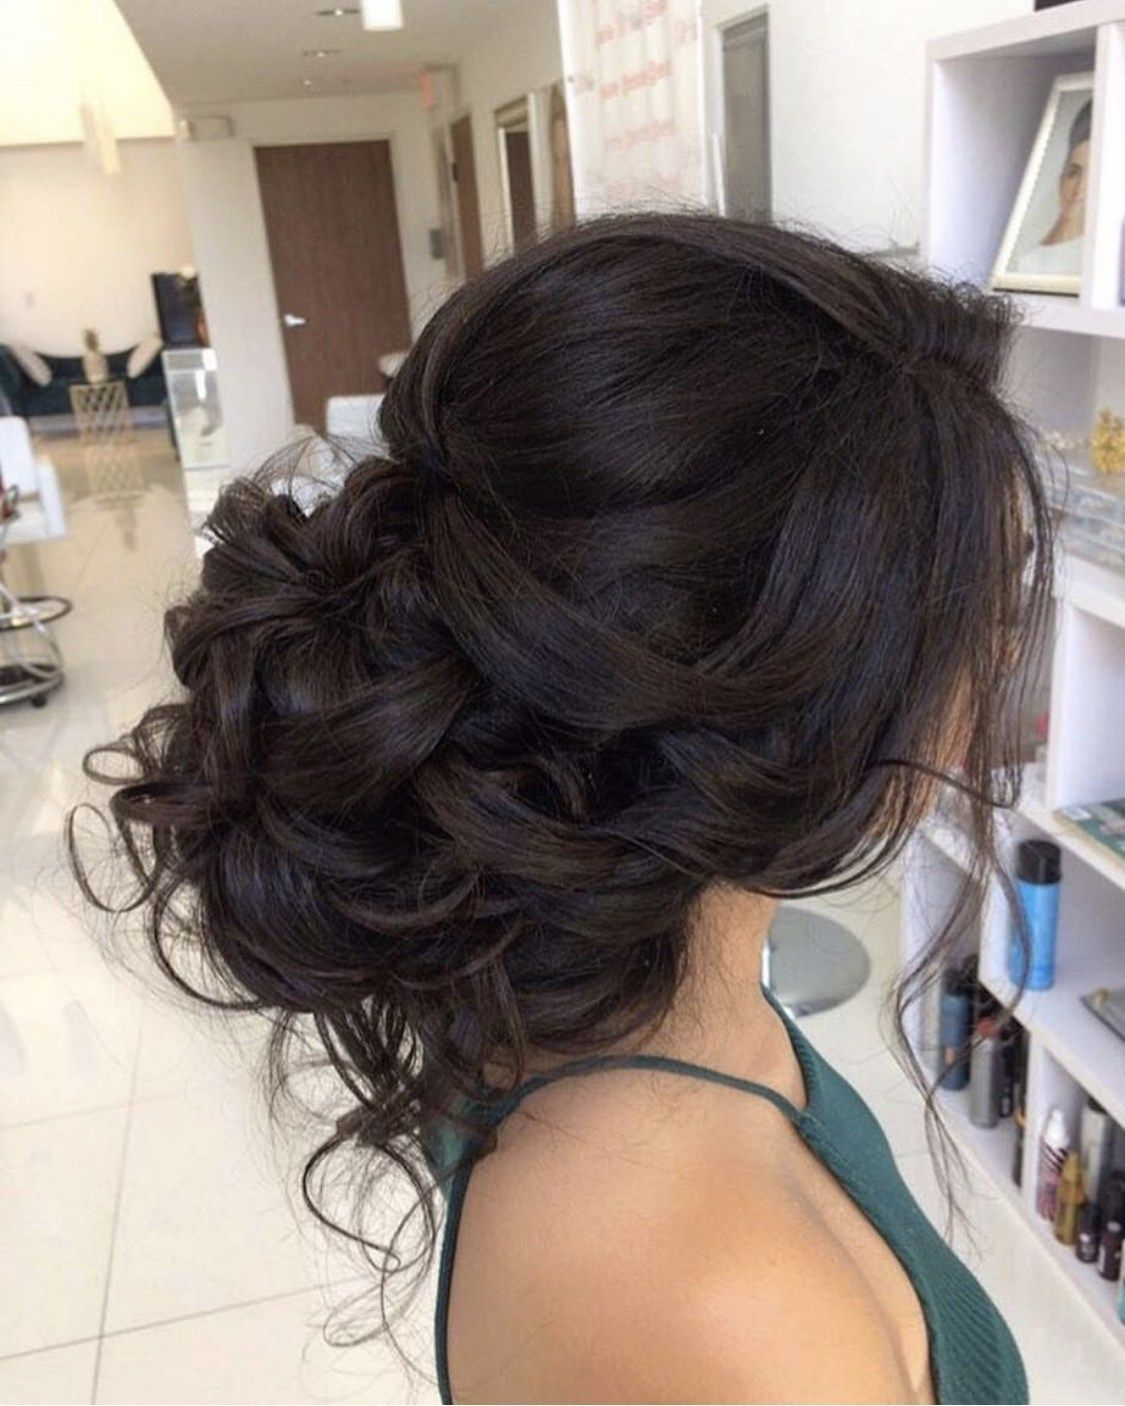 which trending haircut should you try next? | updos